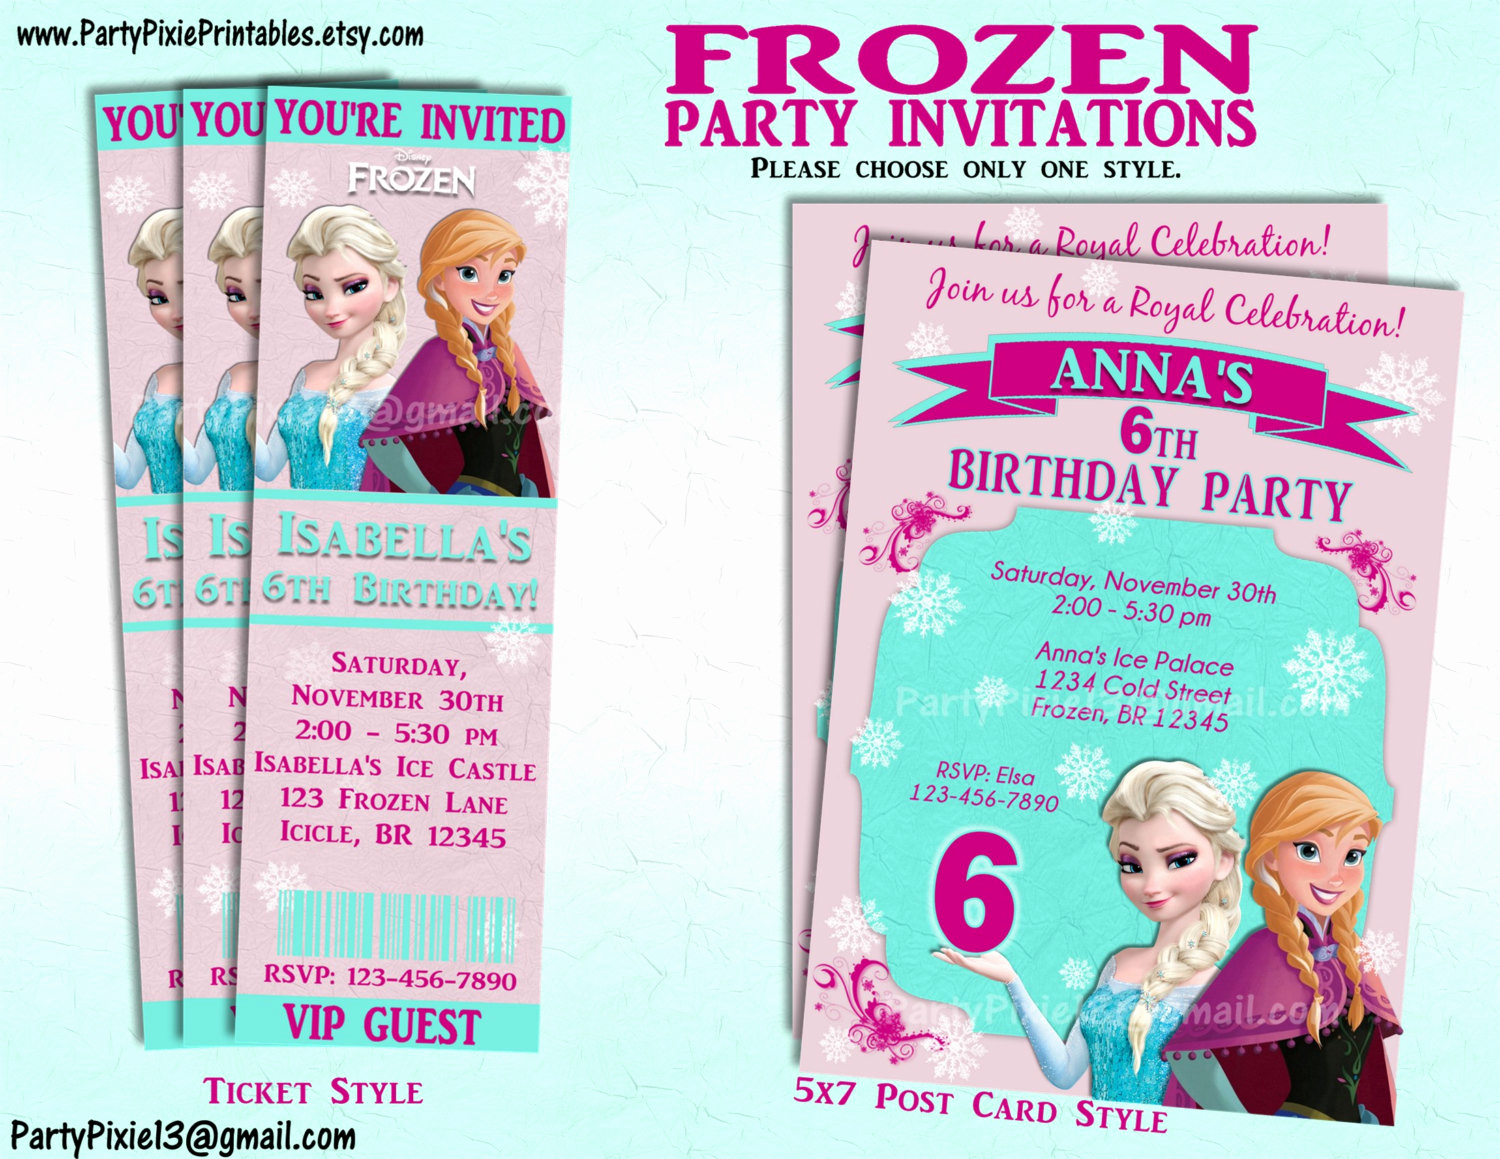 Frozen Invitation Printable Free Luxury Disney Frozen Party Invitation and or Party Package Printable